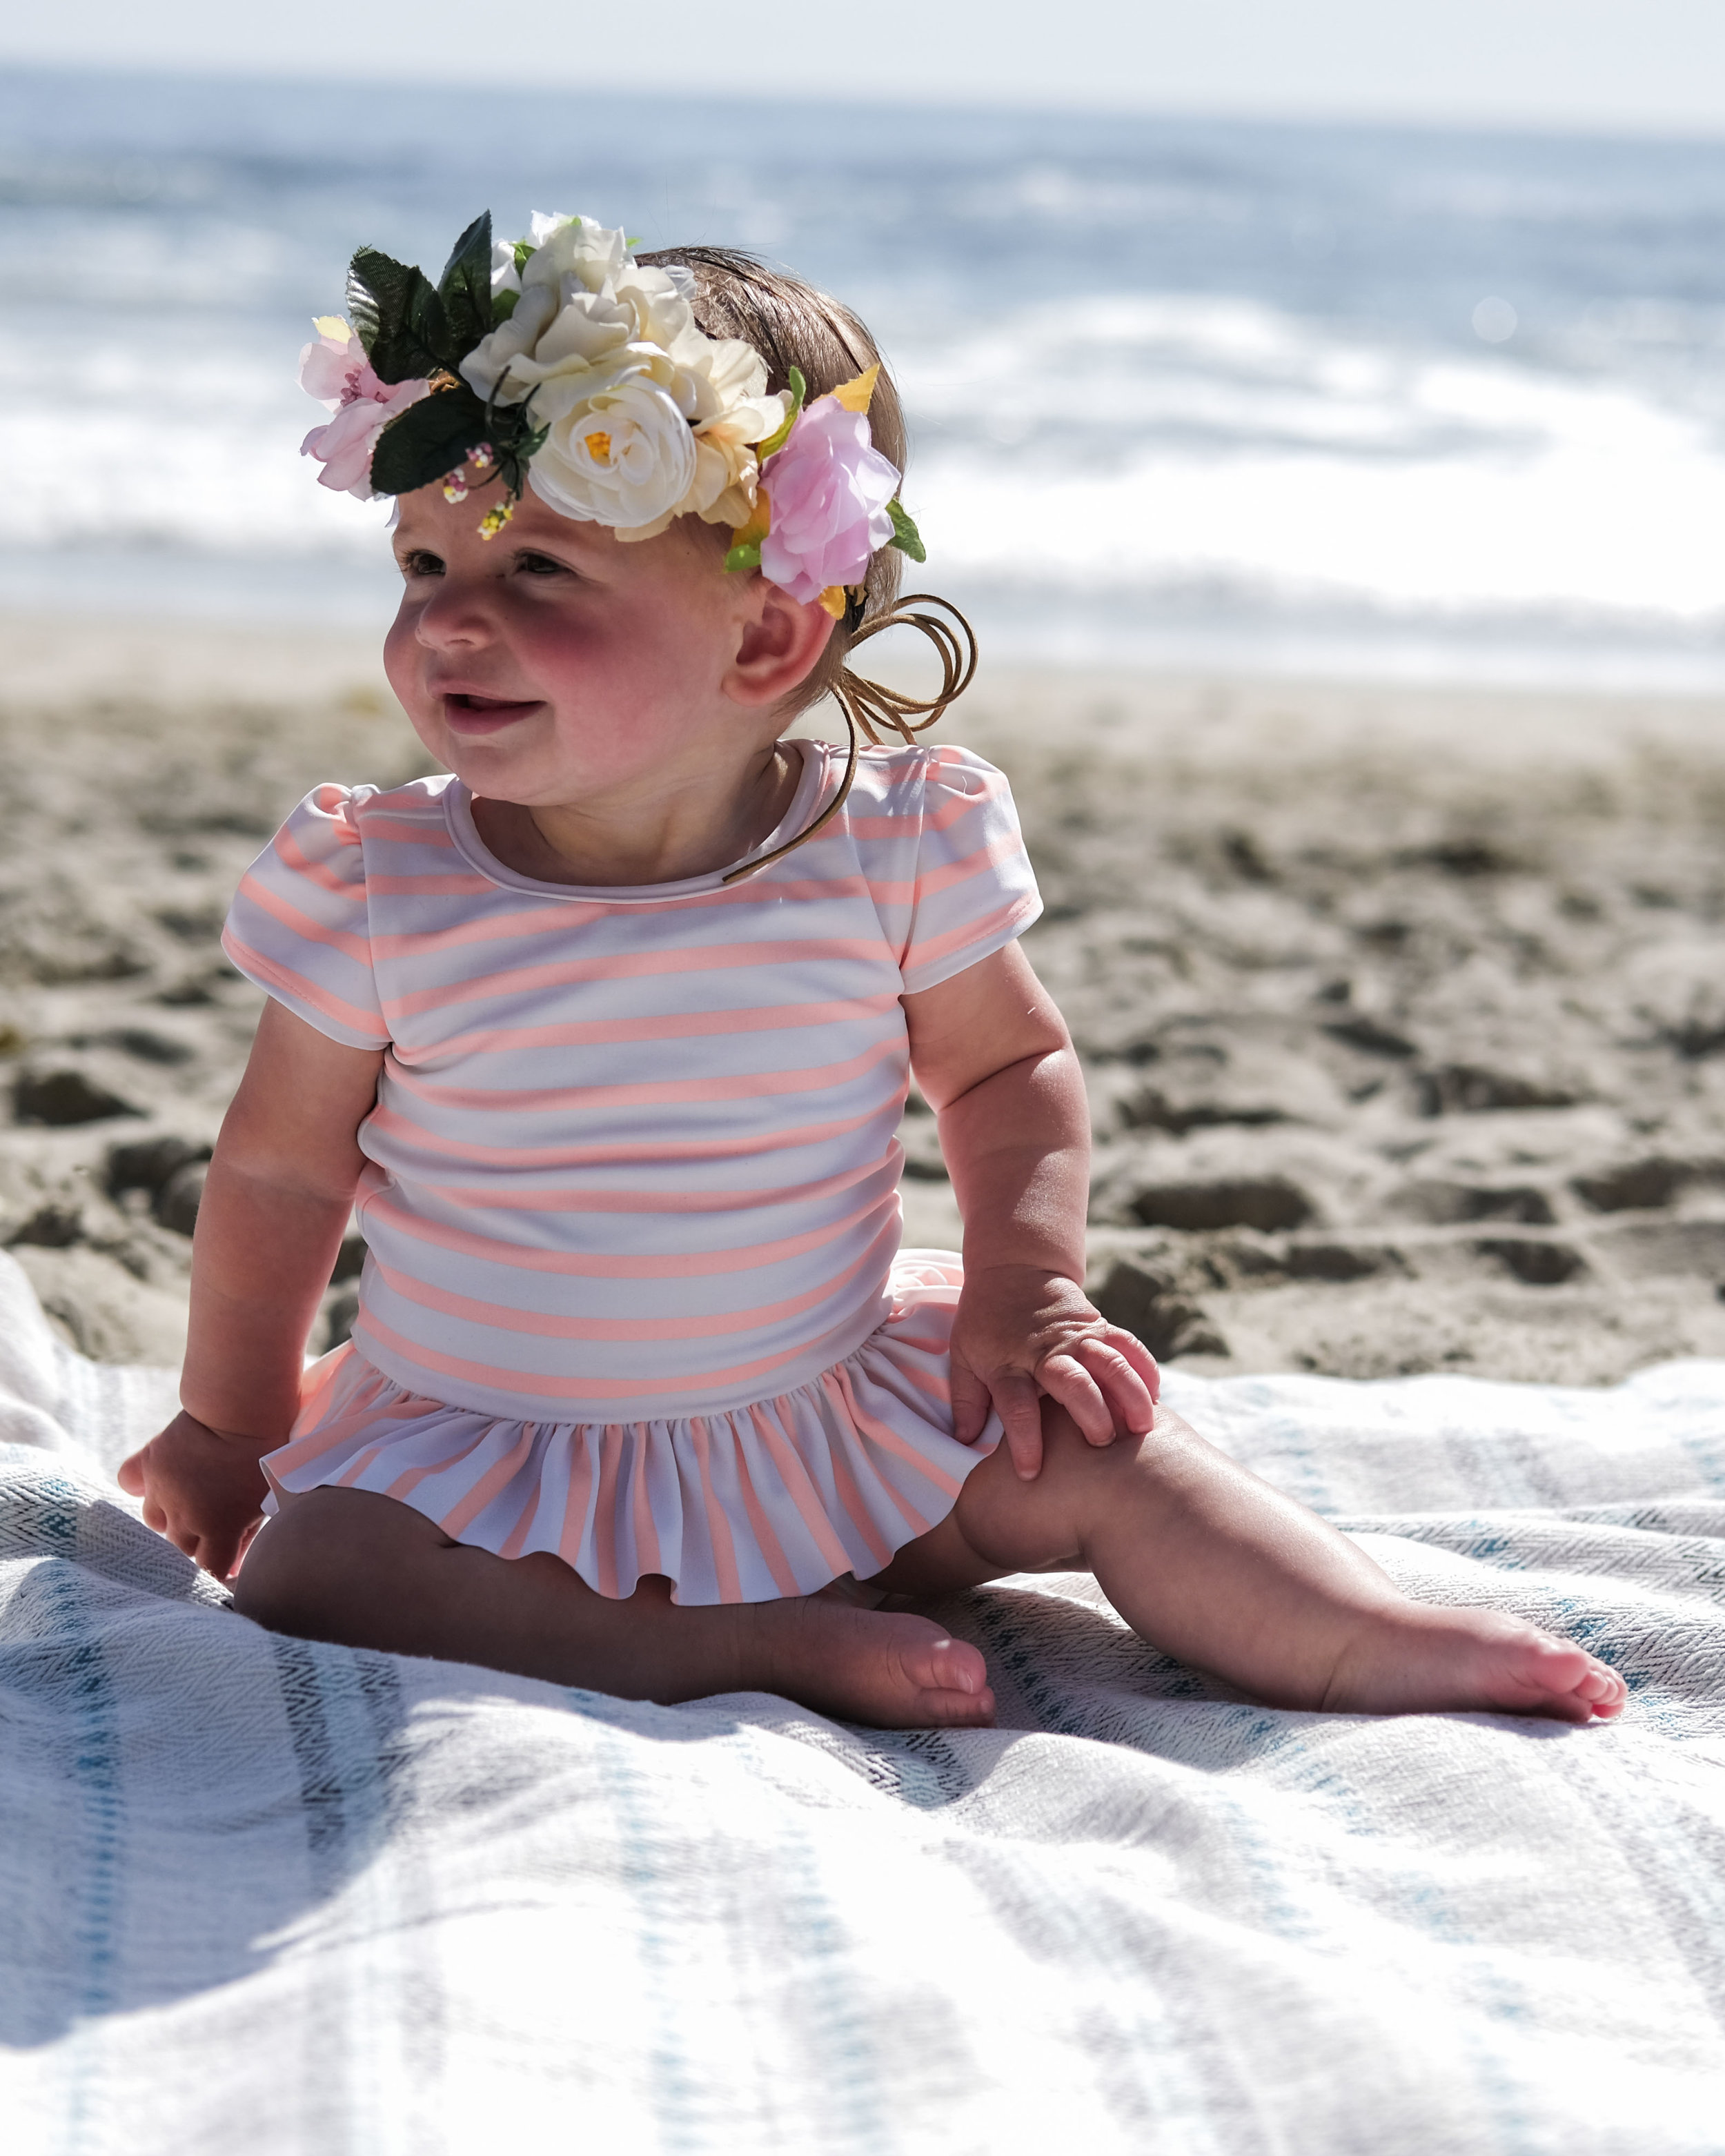 Cute baby portrait at the beach.  One piece swimsuit with flower crown and striped towel.